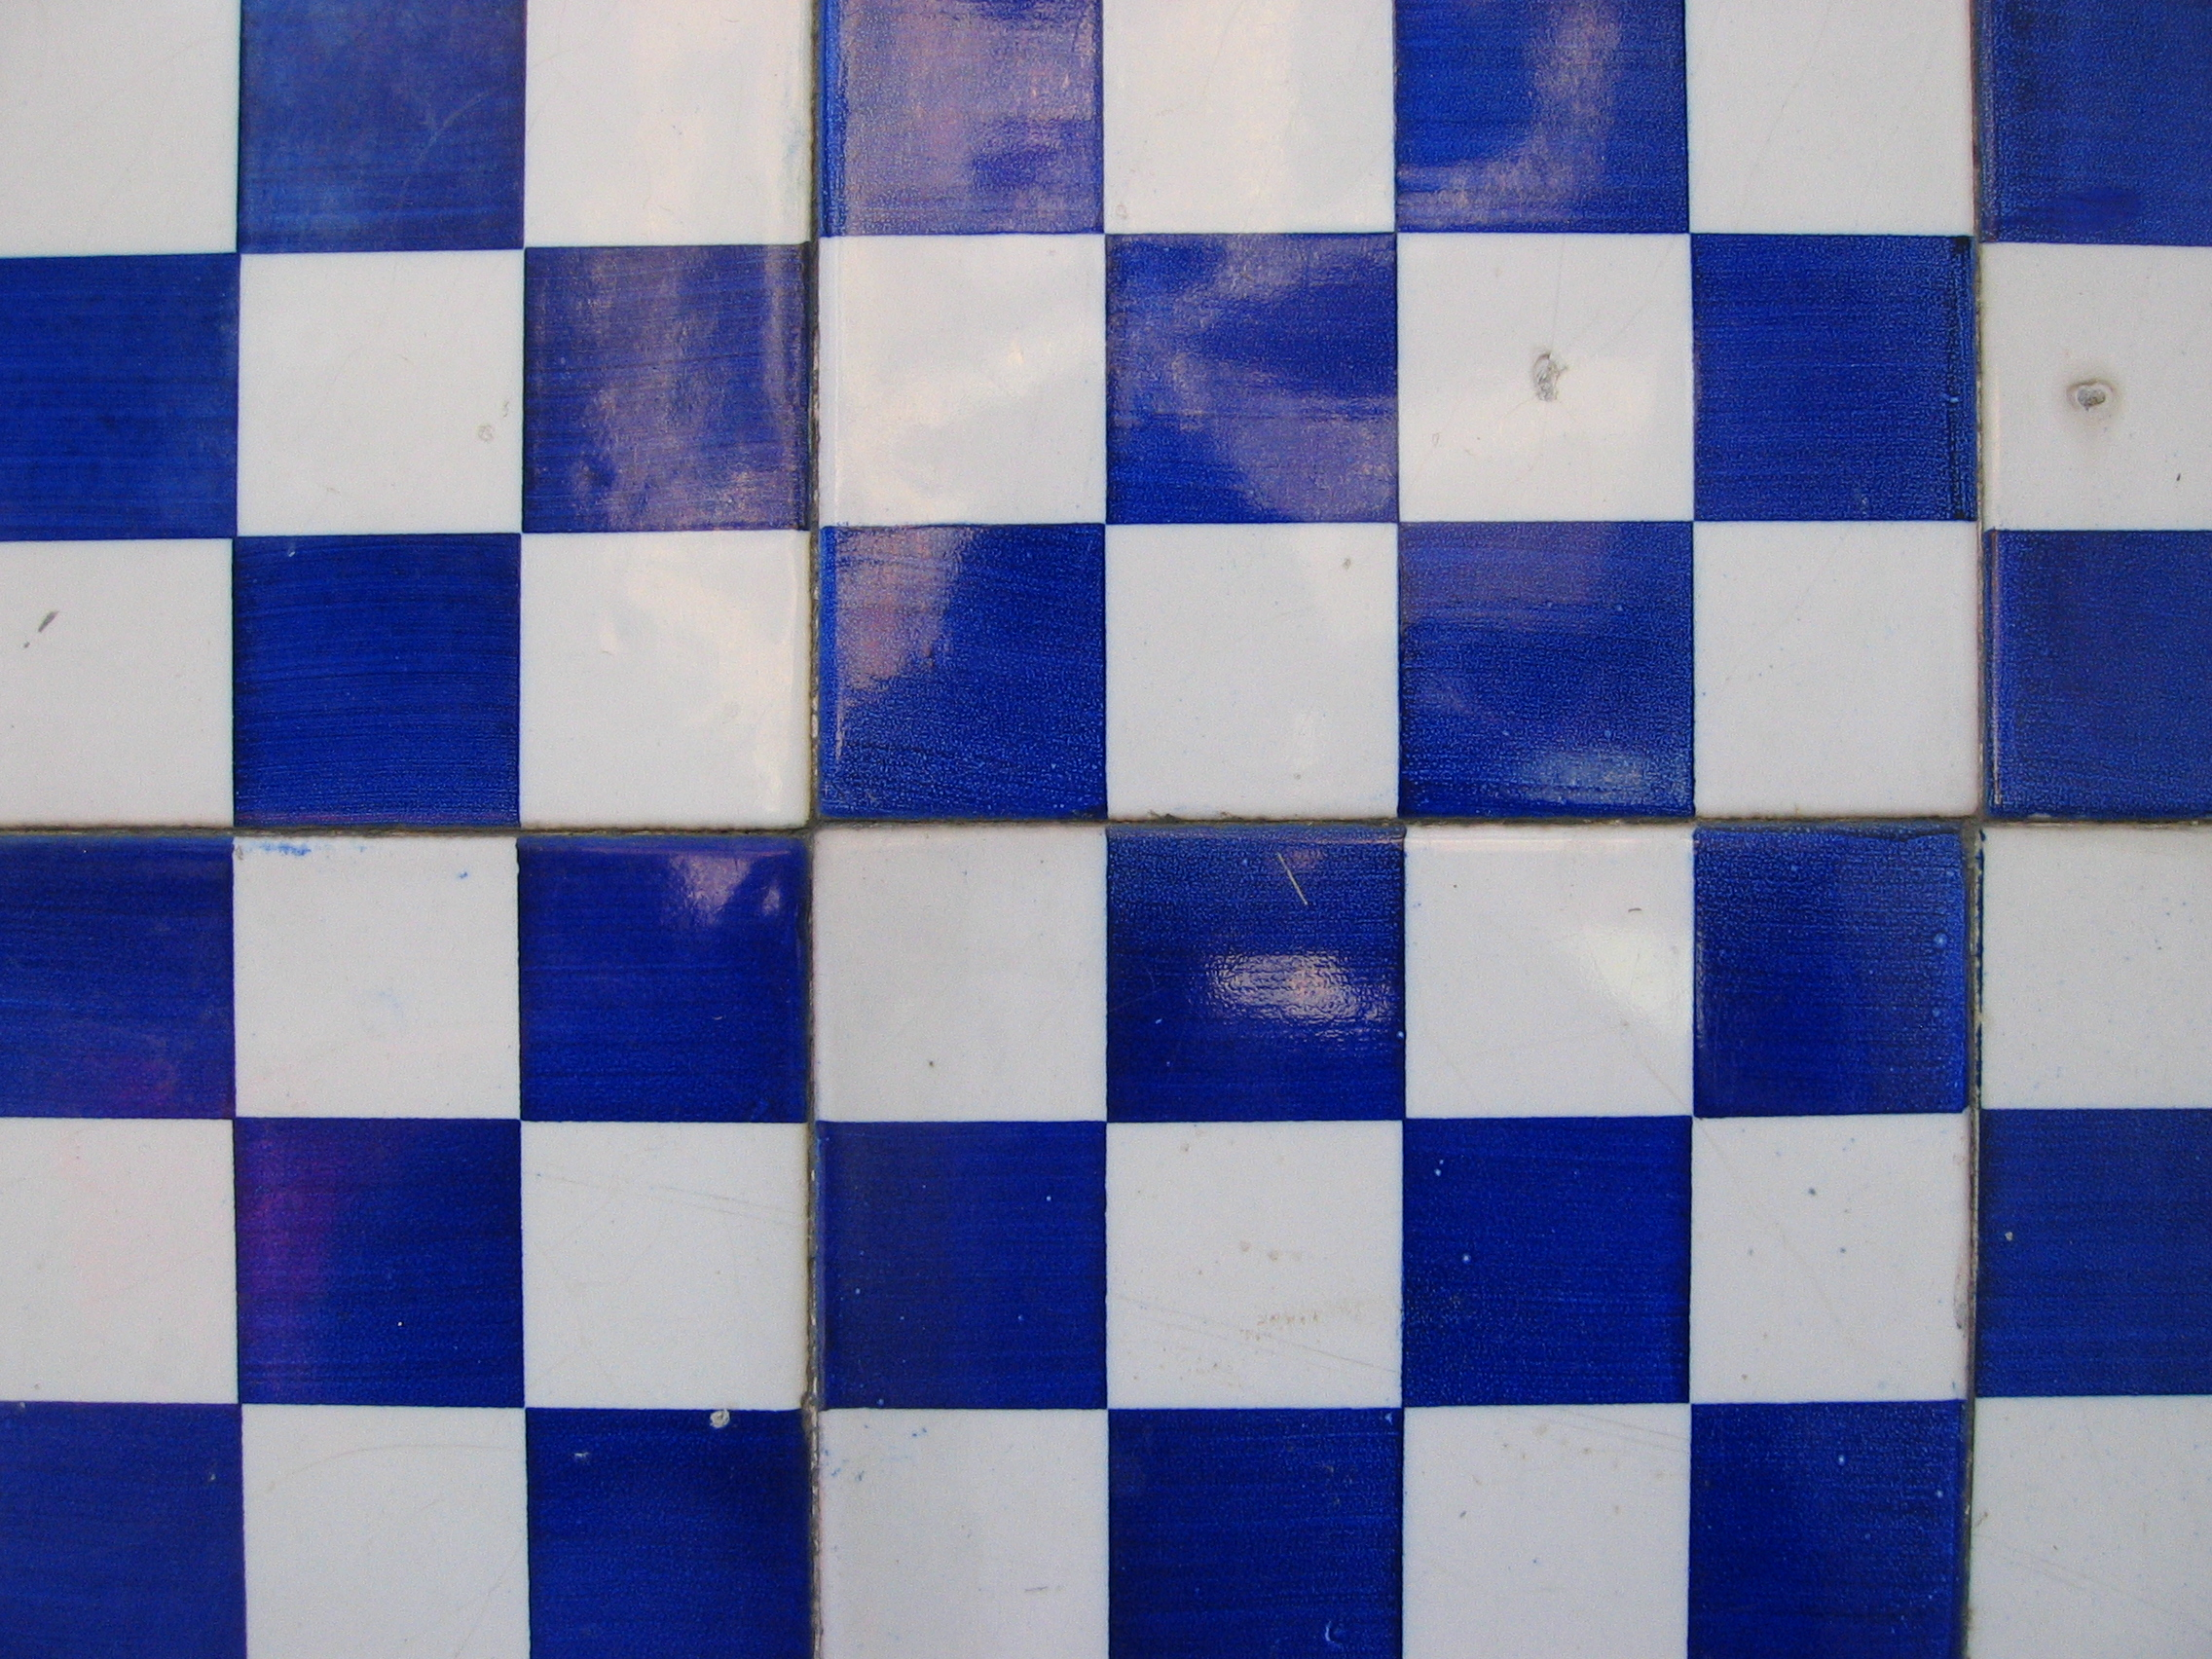 Kitchen Wallpaper Blue And White Checkered